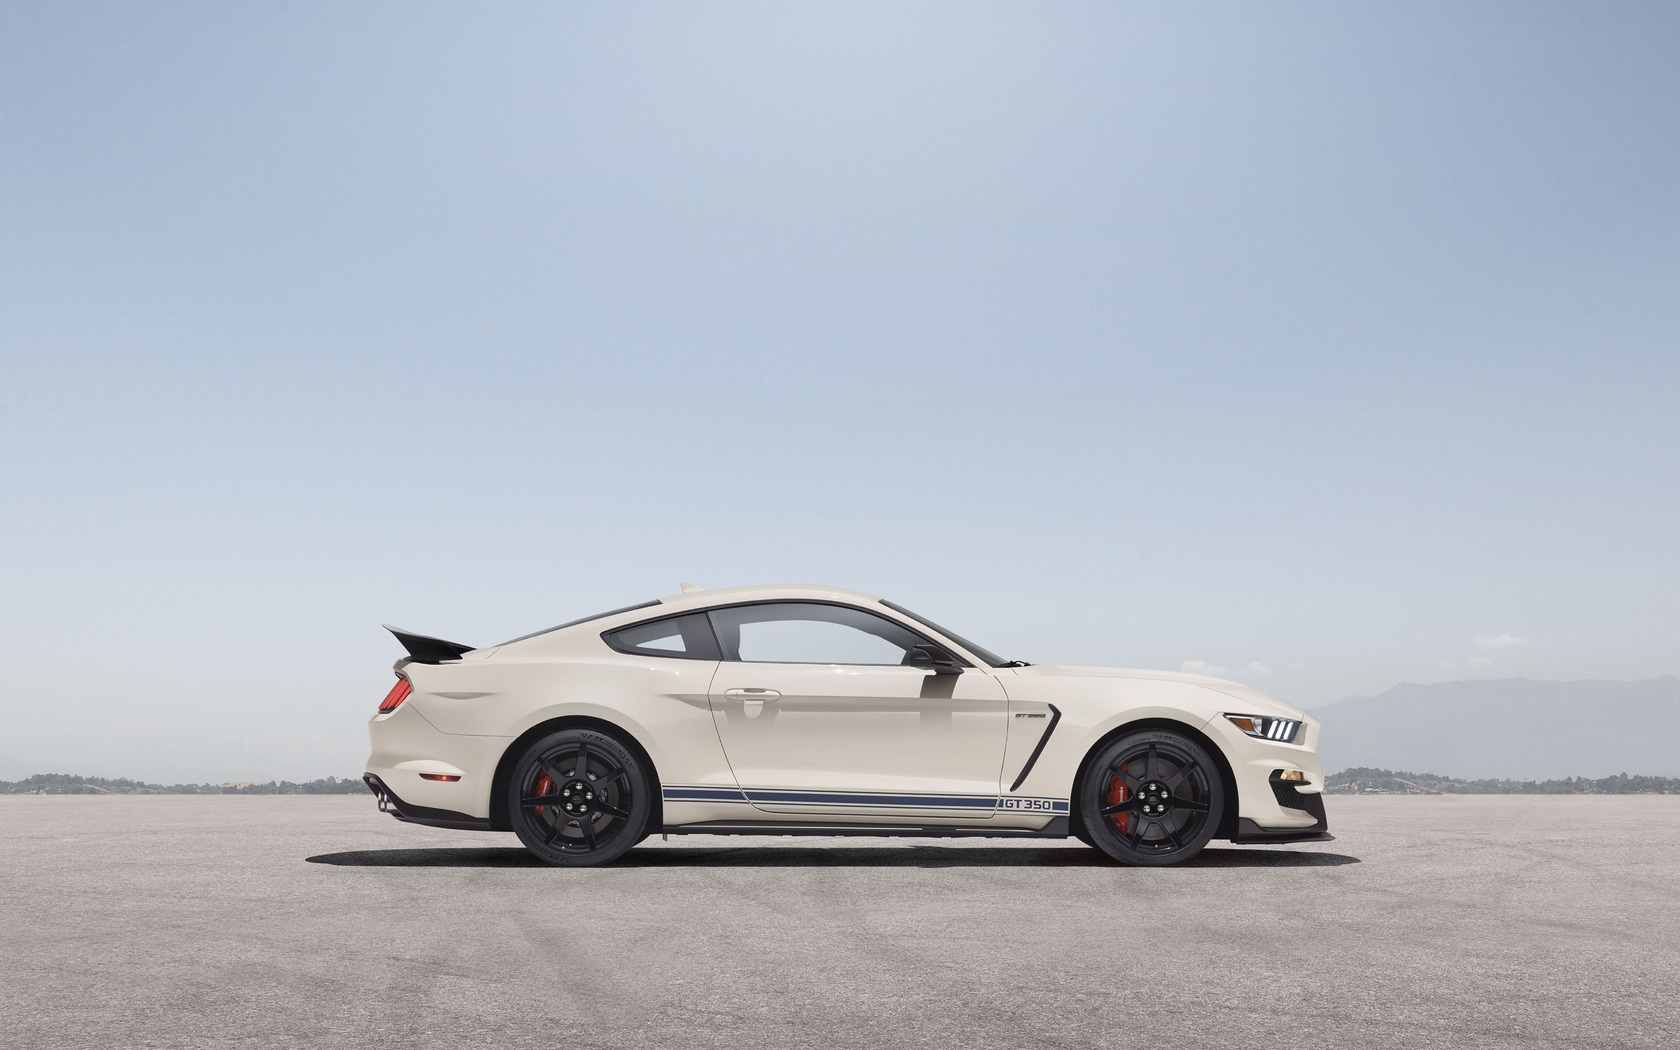 2020-shelby-gt350-heritage-edition-side-view-zg.jpg